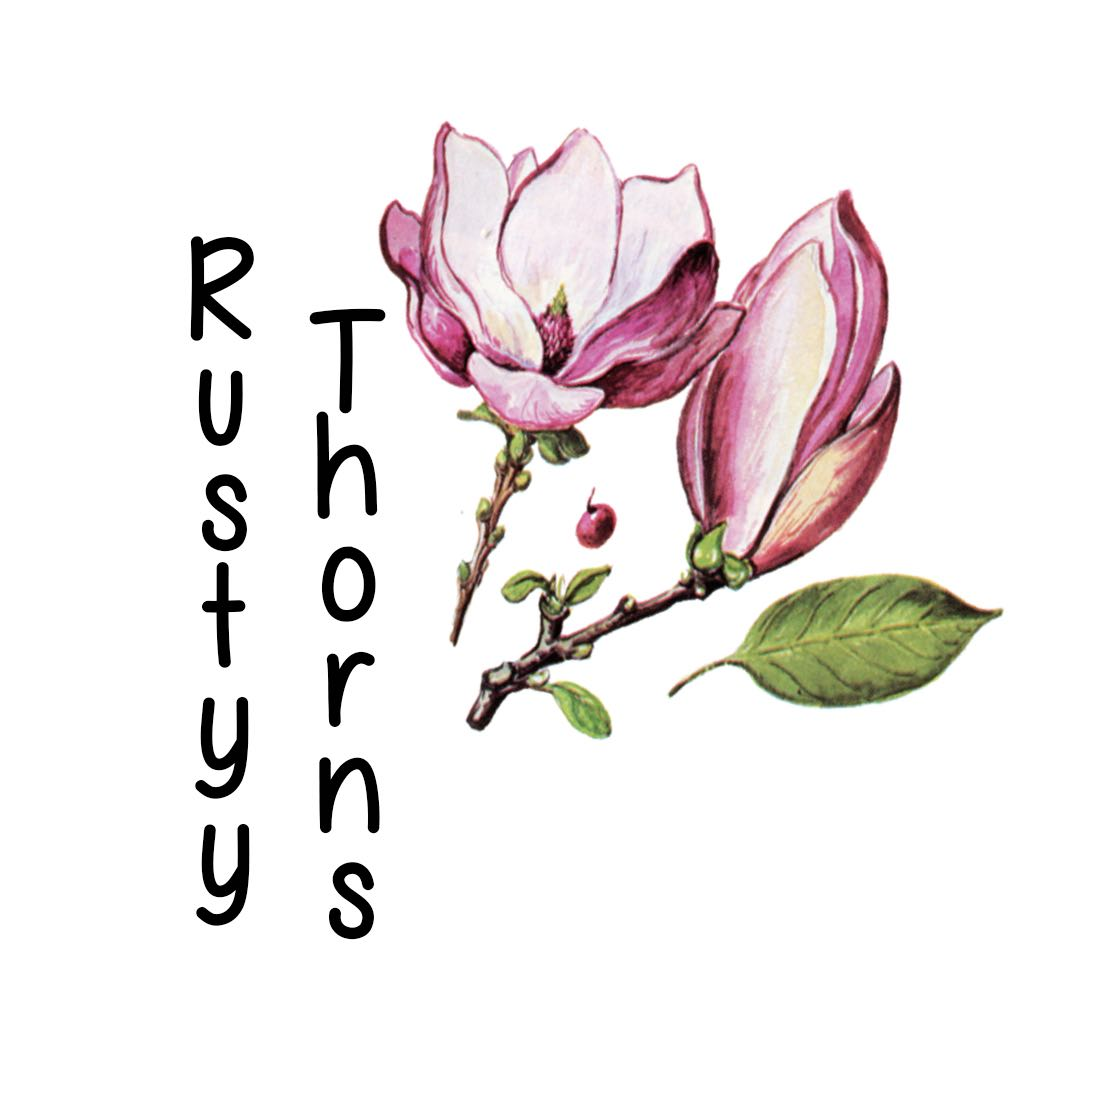 rustyythorns